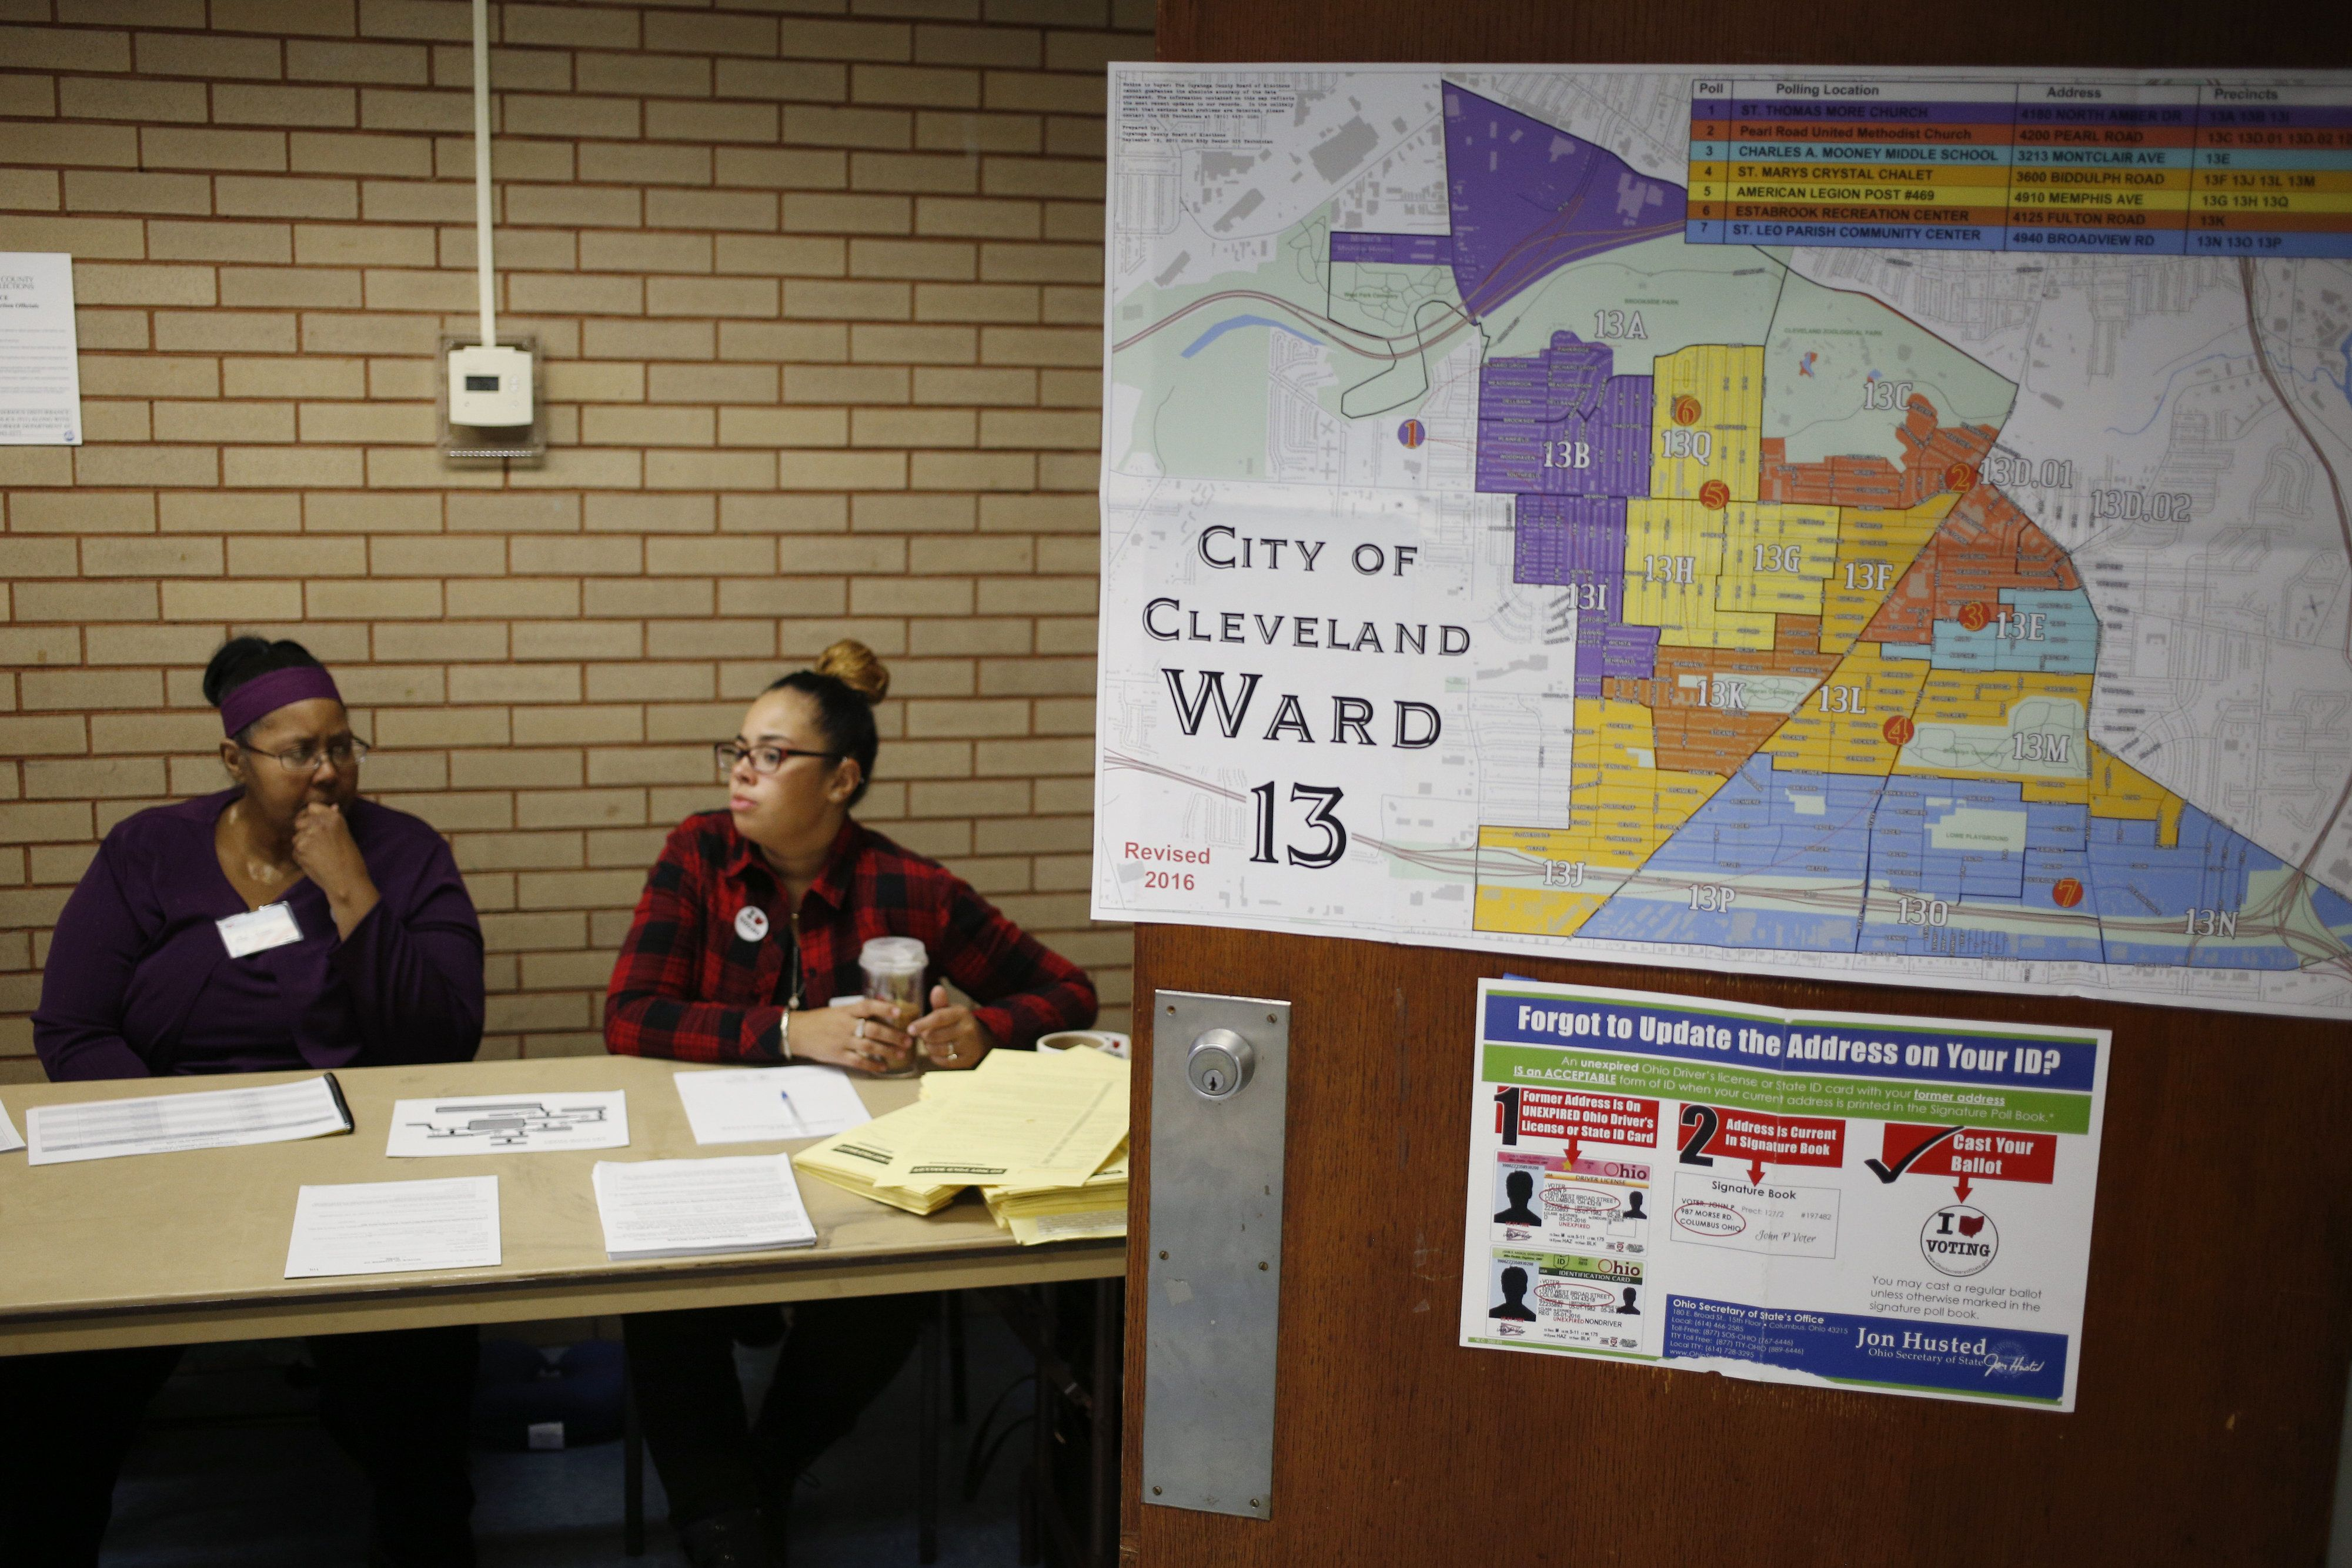 Election workers wait for voters to arrive at the Estabrook Recreation Center polling location in Cleveland, Ohio, U.S., on Tuesday, Nov. 8, 2016. The Justice Department will deploy 500 personnel to polling stations on Election Day to help protect voters against discrimination and intimidation, down from 2012 as the result of a Supreme Court ruling that gutted part of the 1965 Voting Rights Act. Photographer: Luke Sharrett/Bloomberg via Getty Images